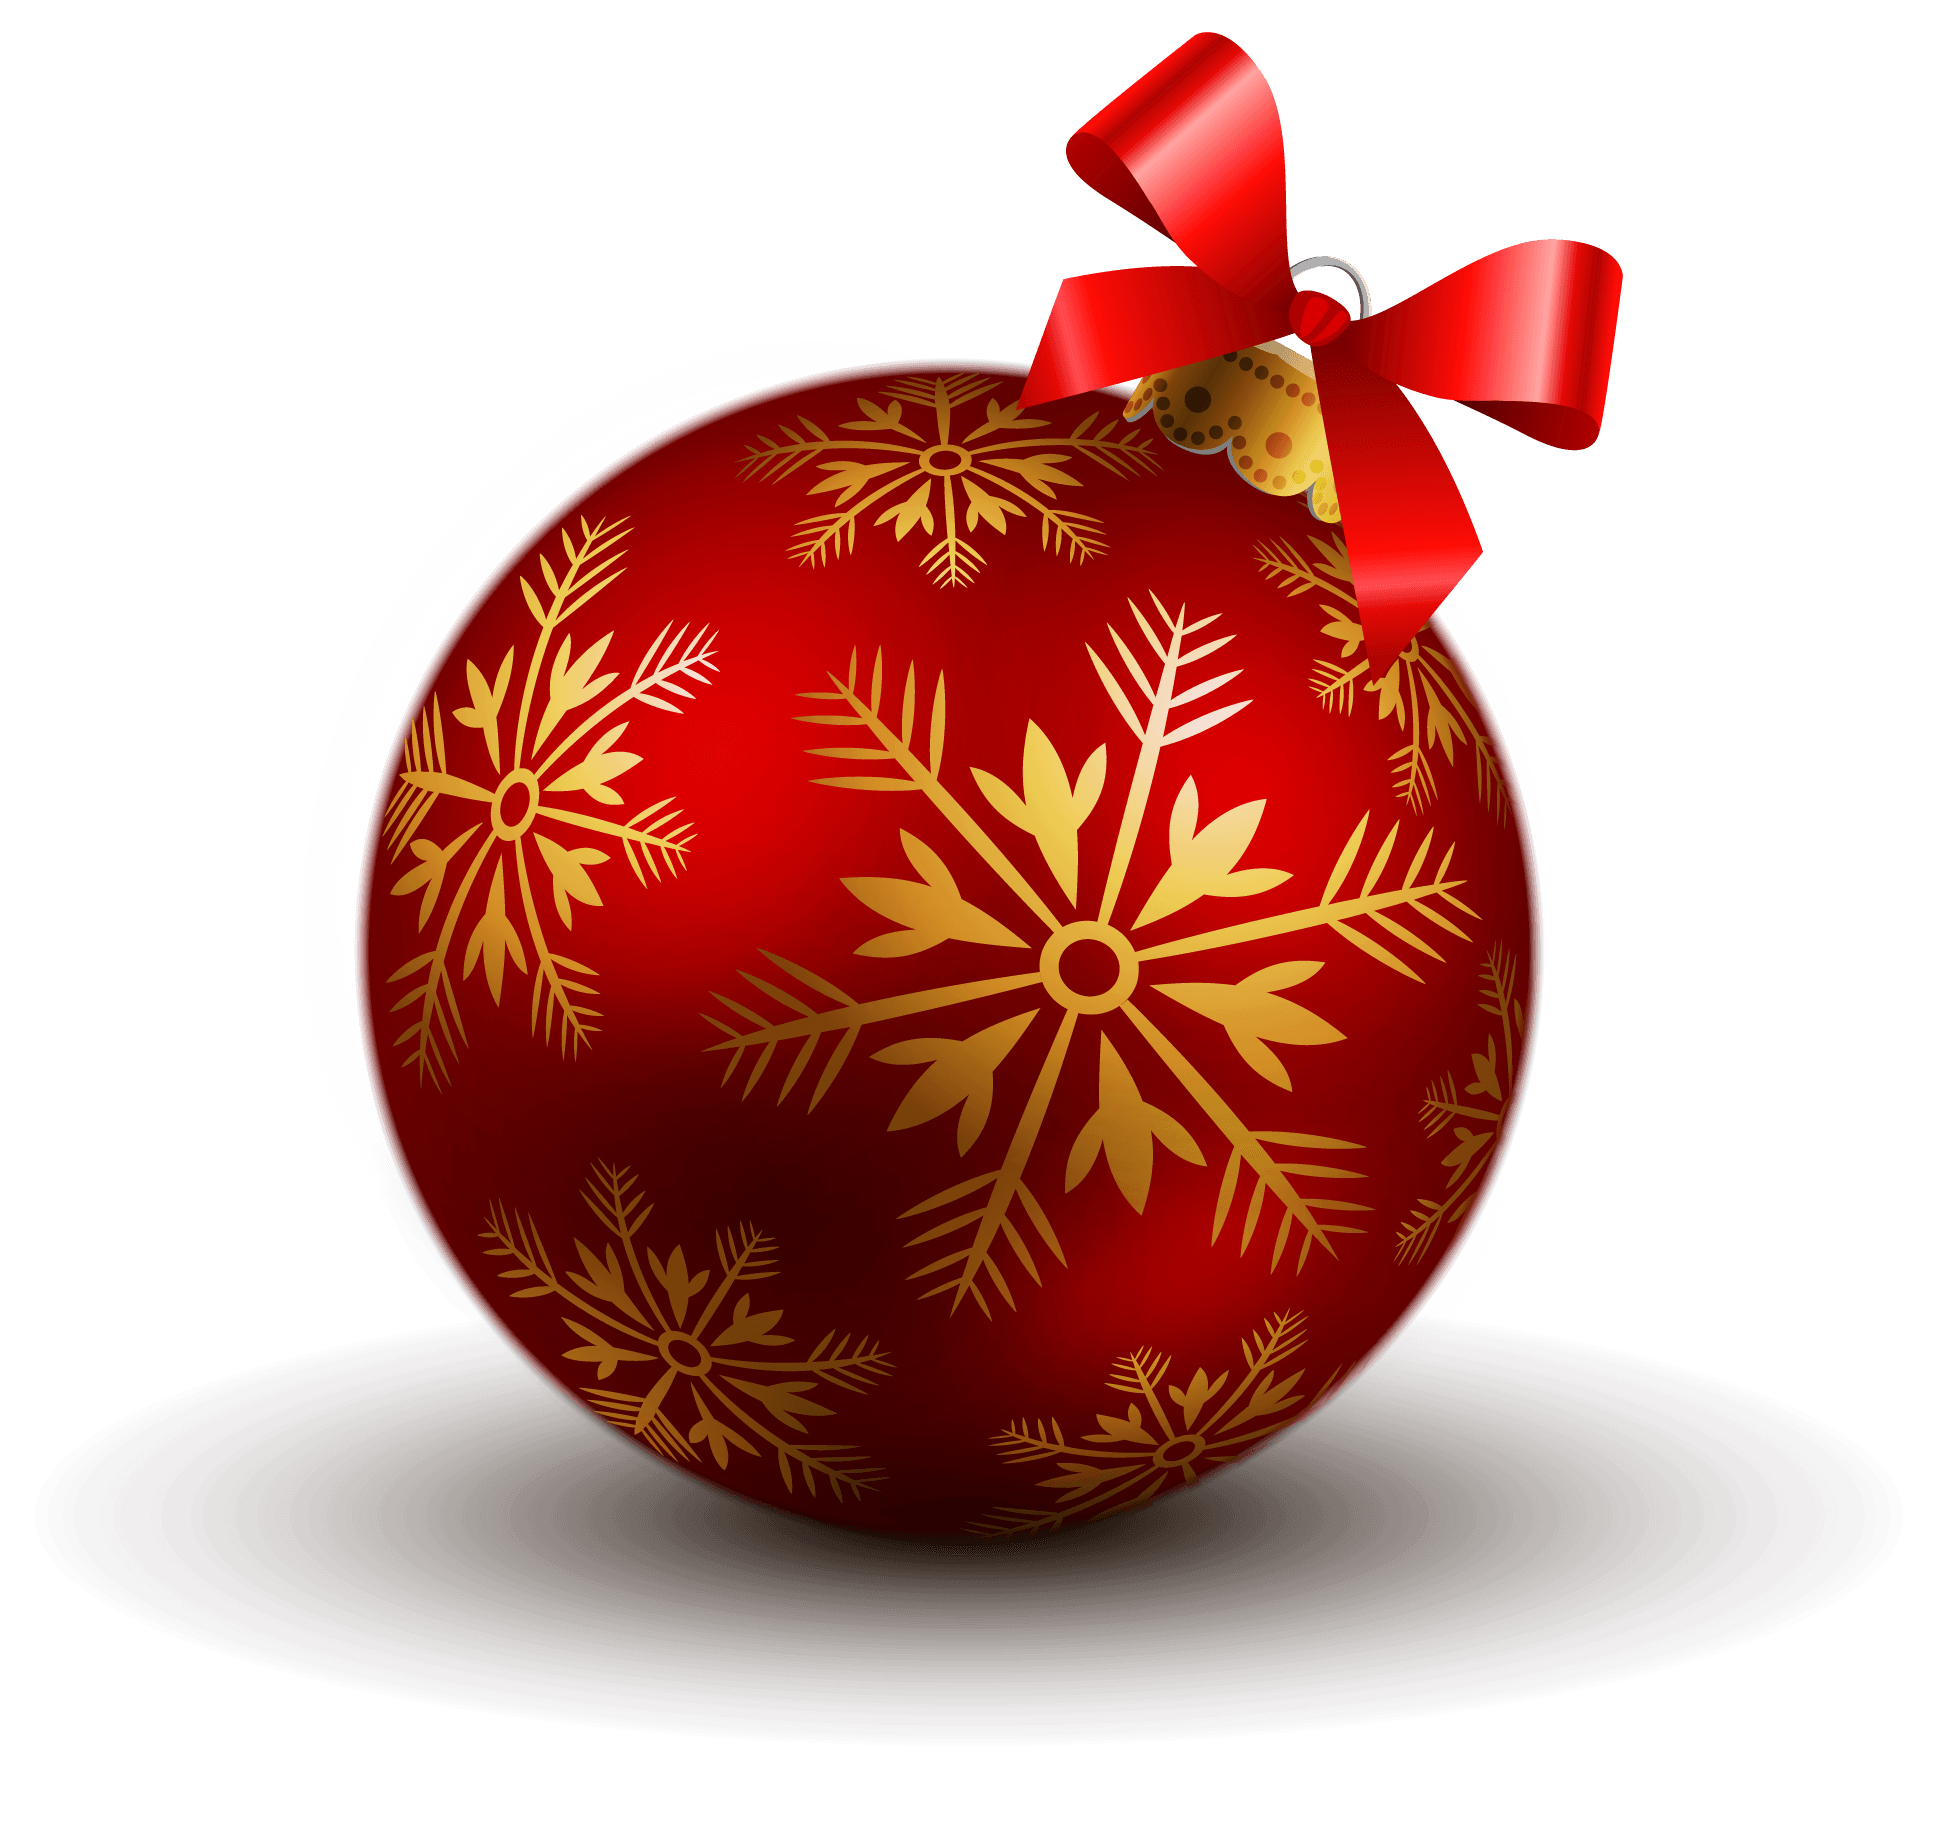 Png Christmas.Ball Christmas Transparent Png Stickpng